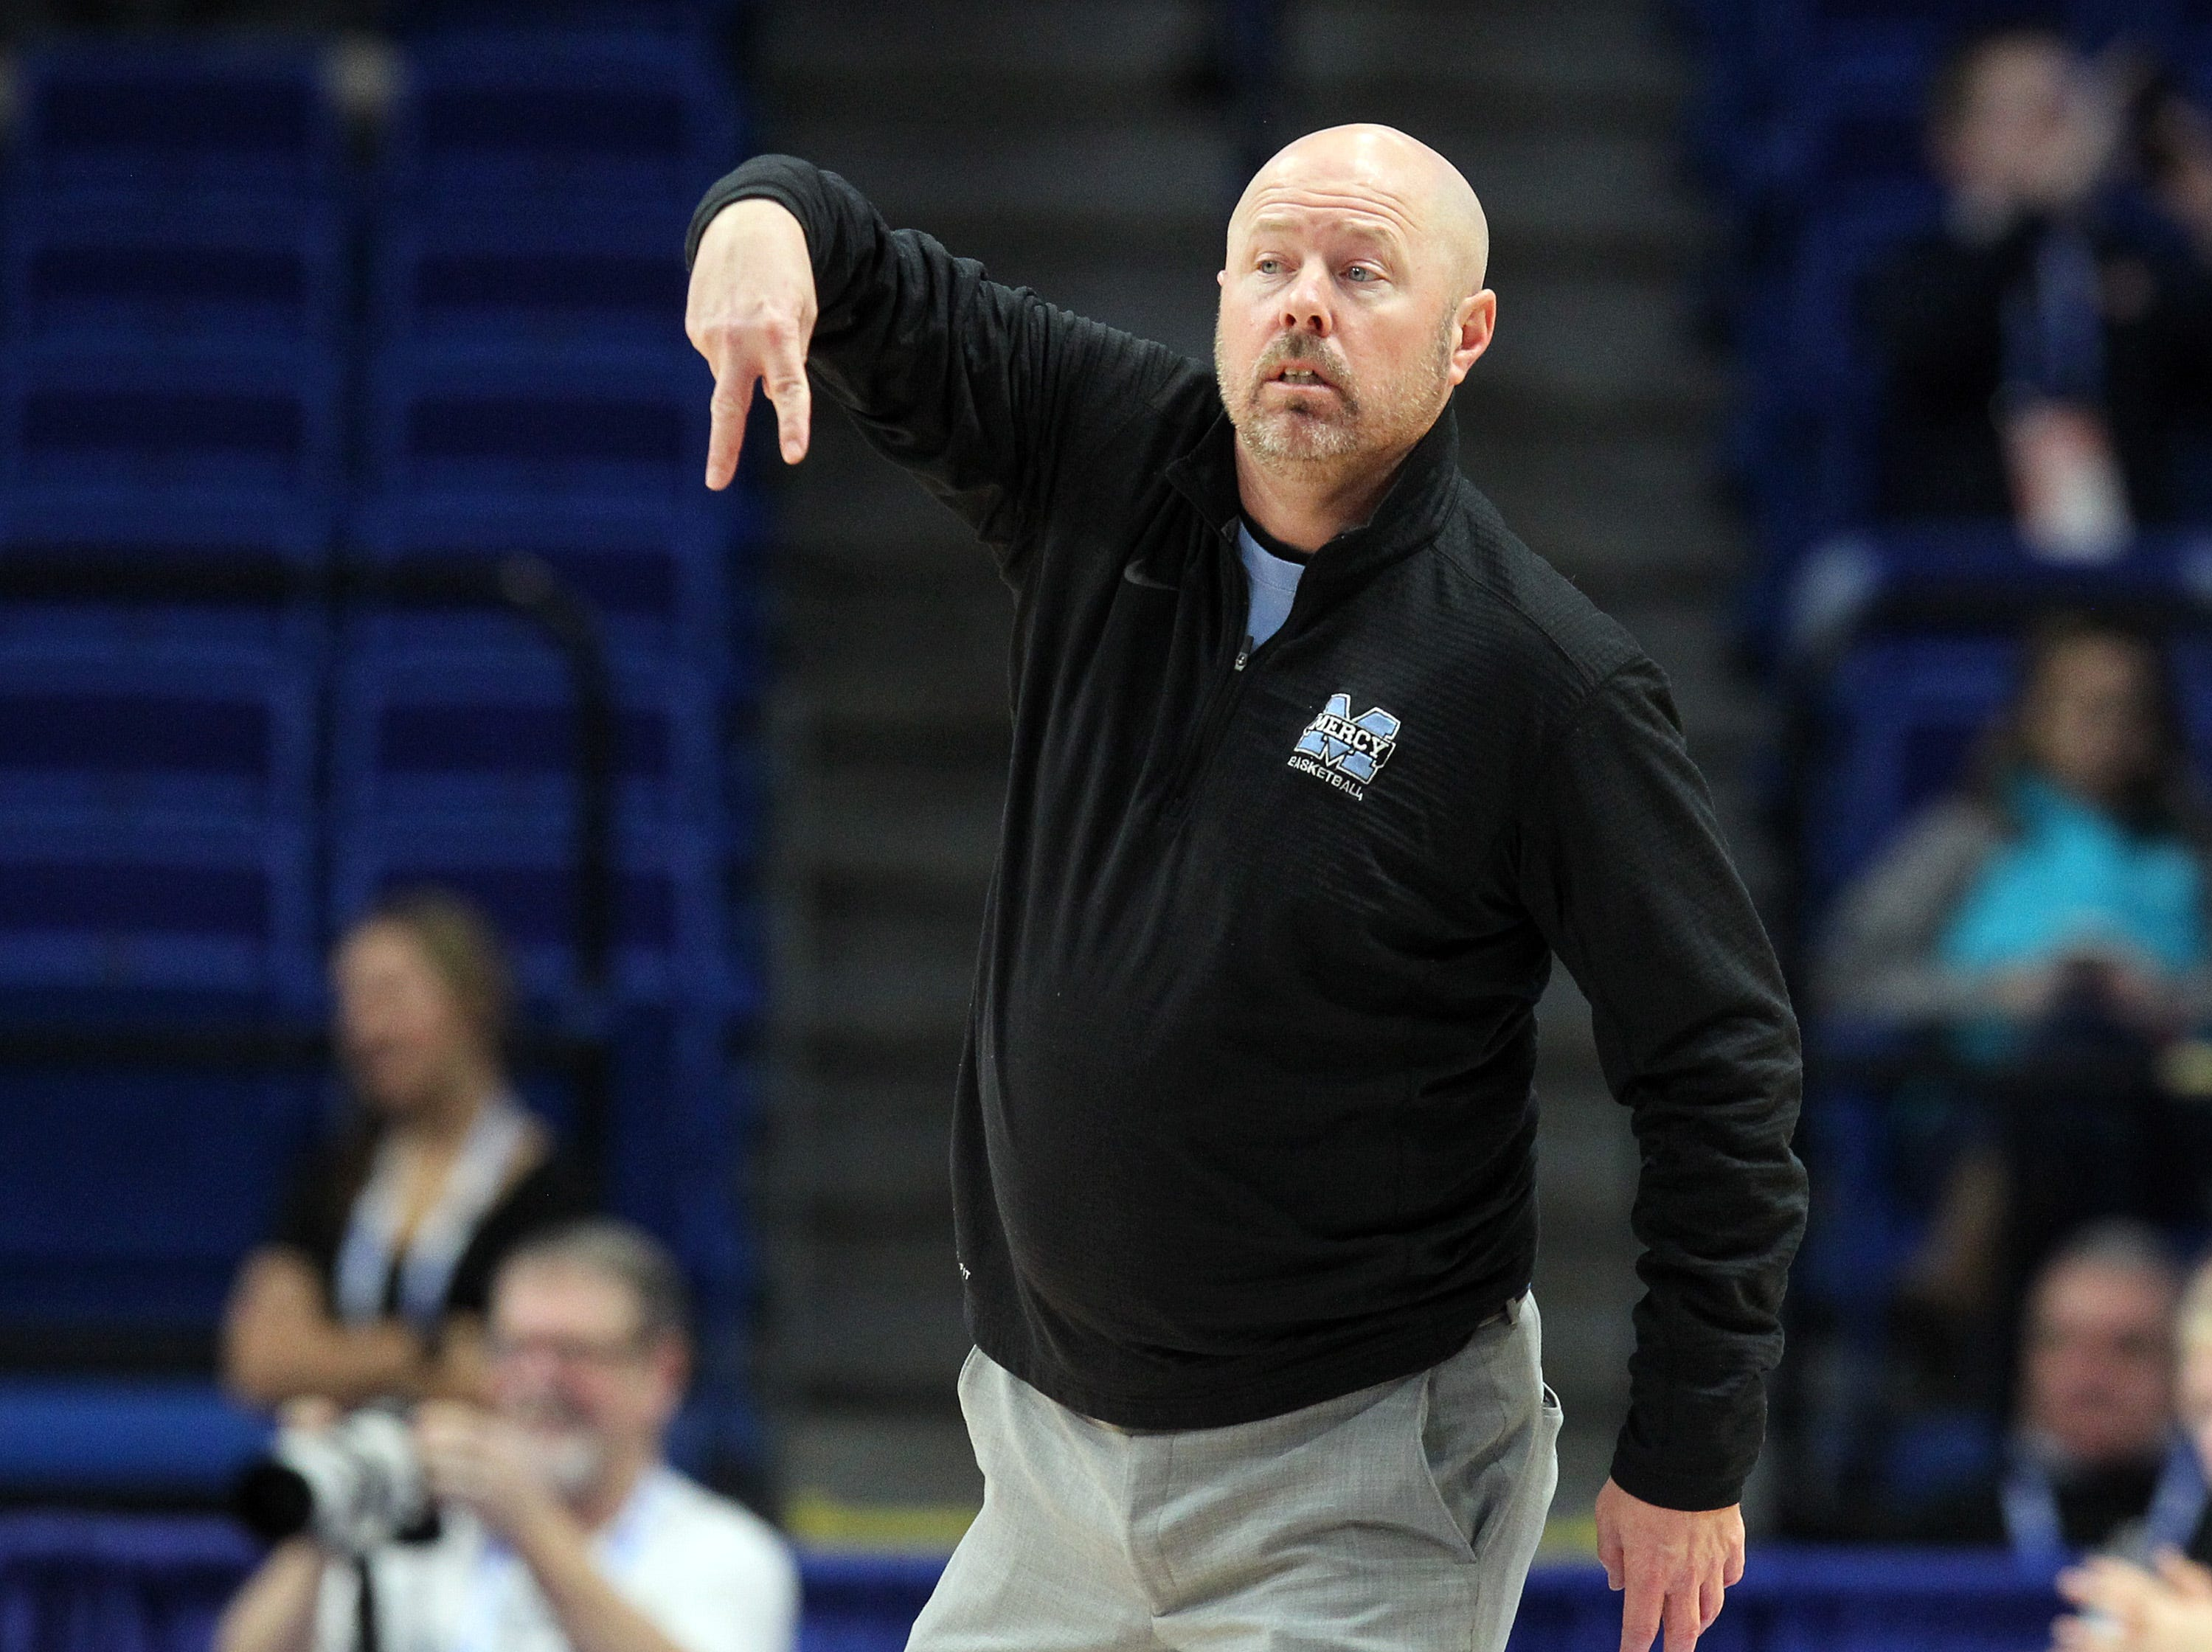 Mercy head coach Keith Baisch calls a play in their opening round game at the KHSAA Girl's Sweet 16, Wednesday, March 13.